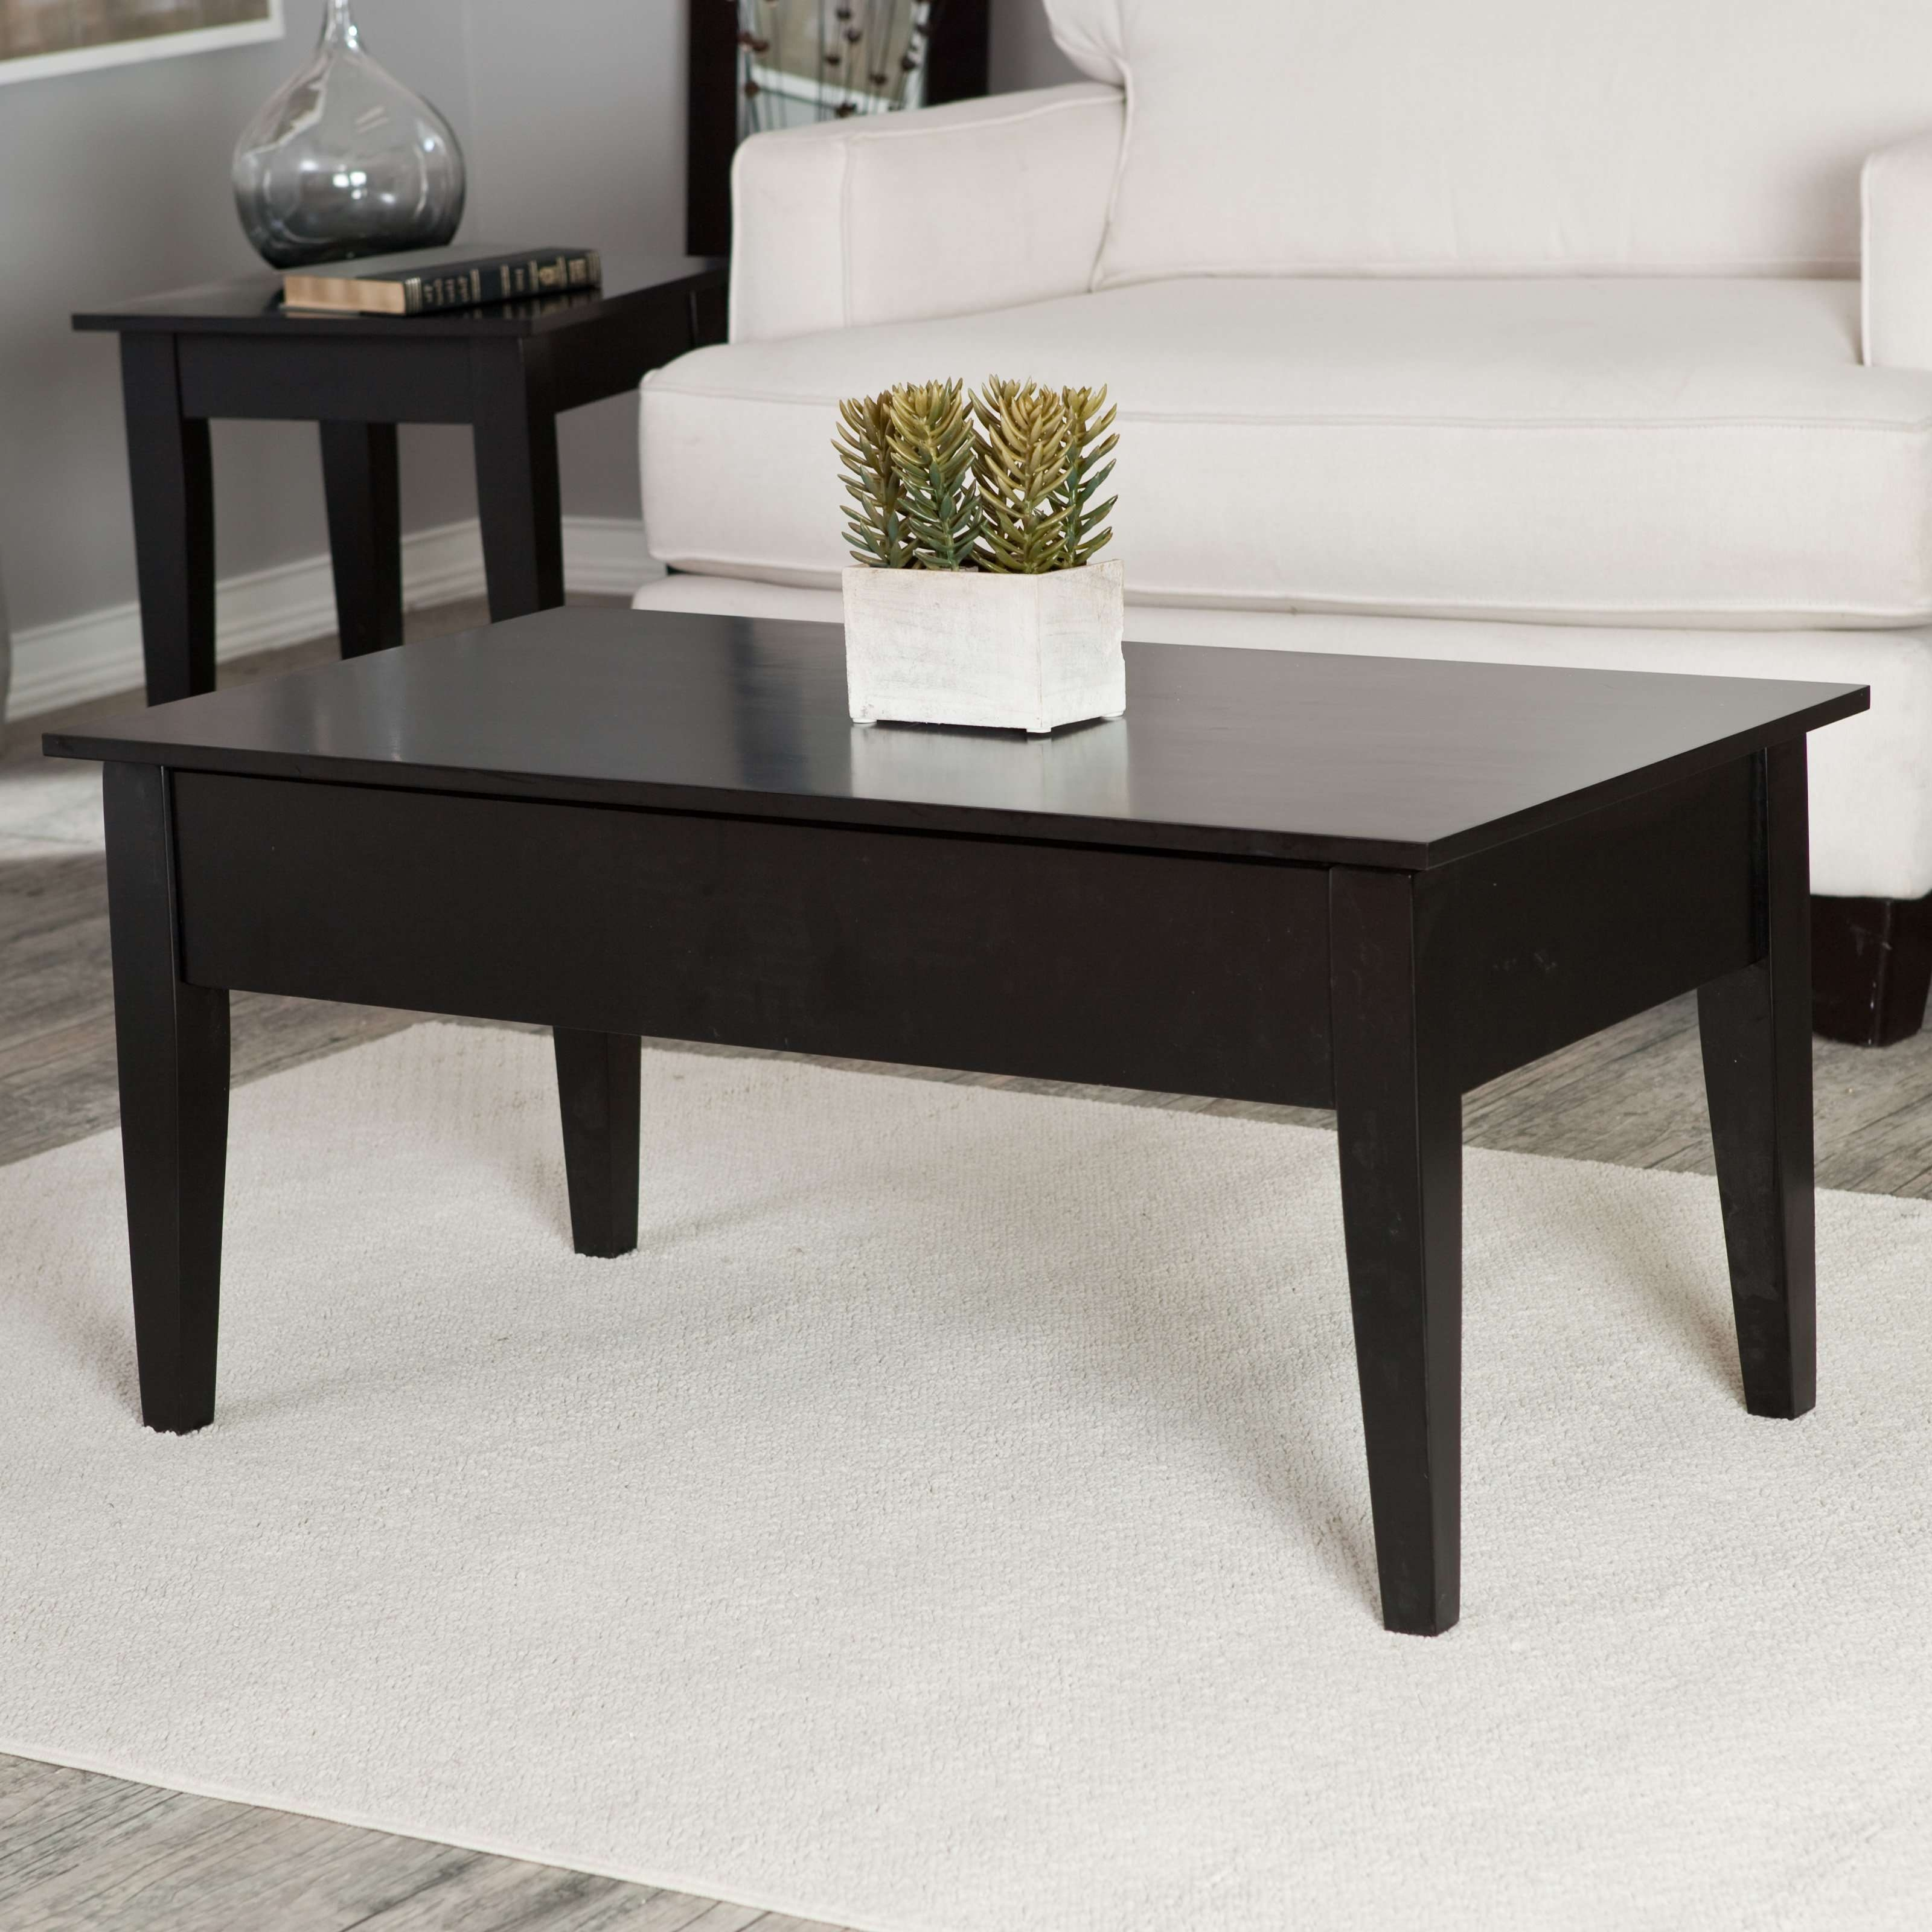 Most Popular Round Red Coffee Tables Inside Coffee Table : Wonderful Wood And Metal Coffee Table Modern White (View 11 of 20)